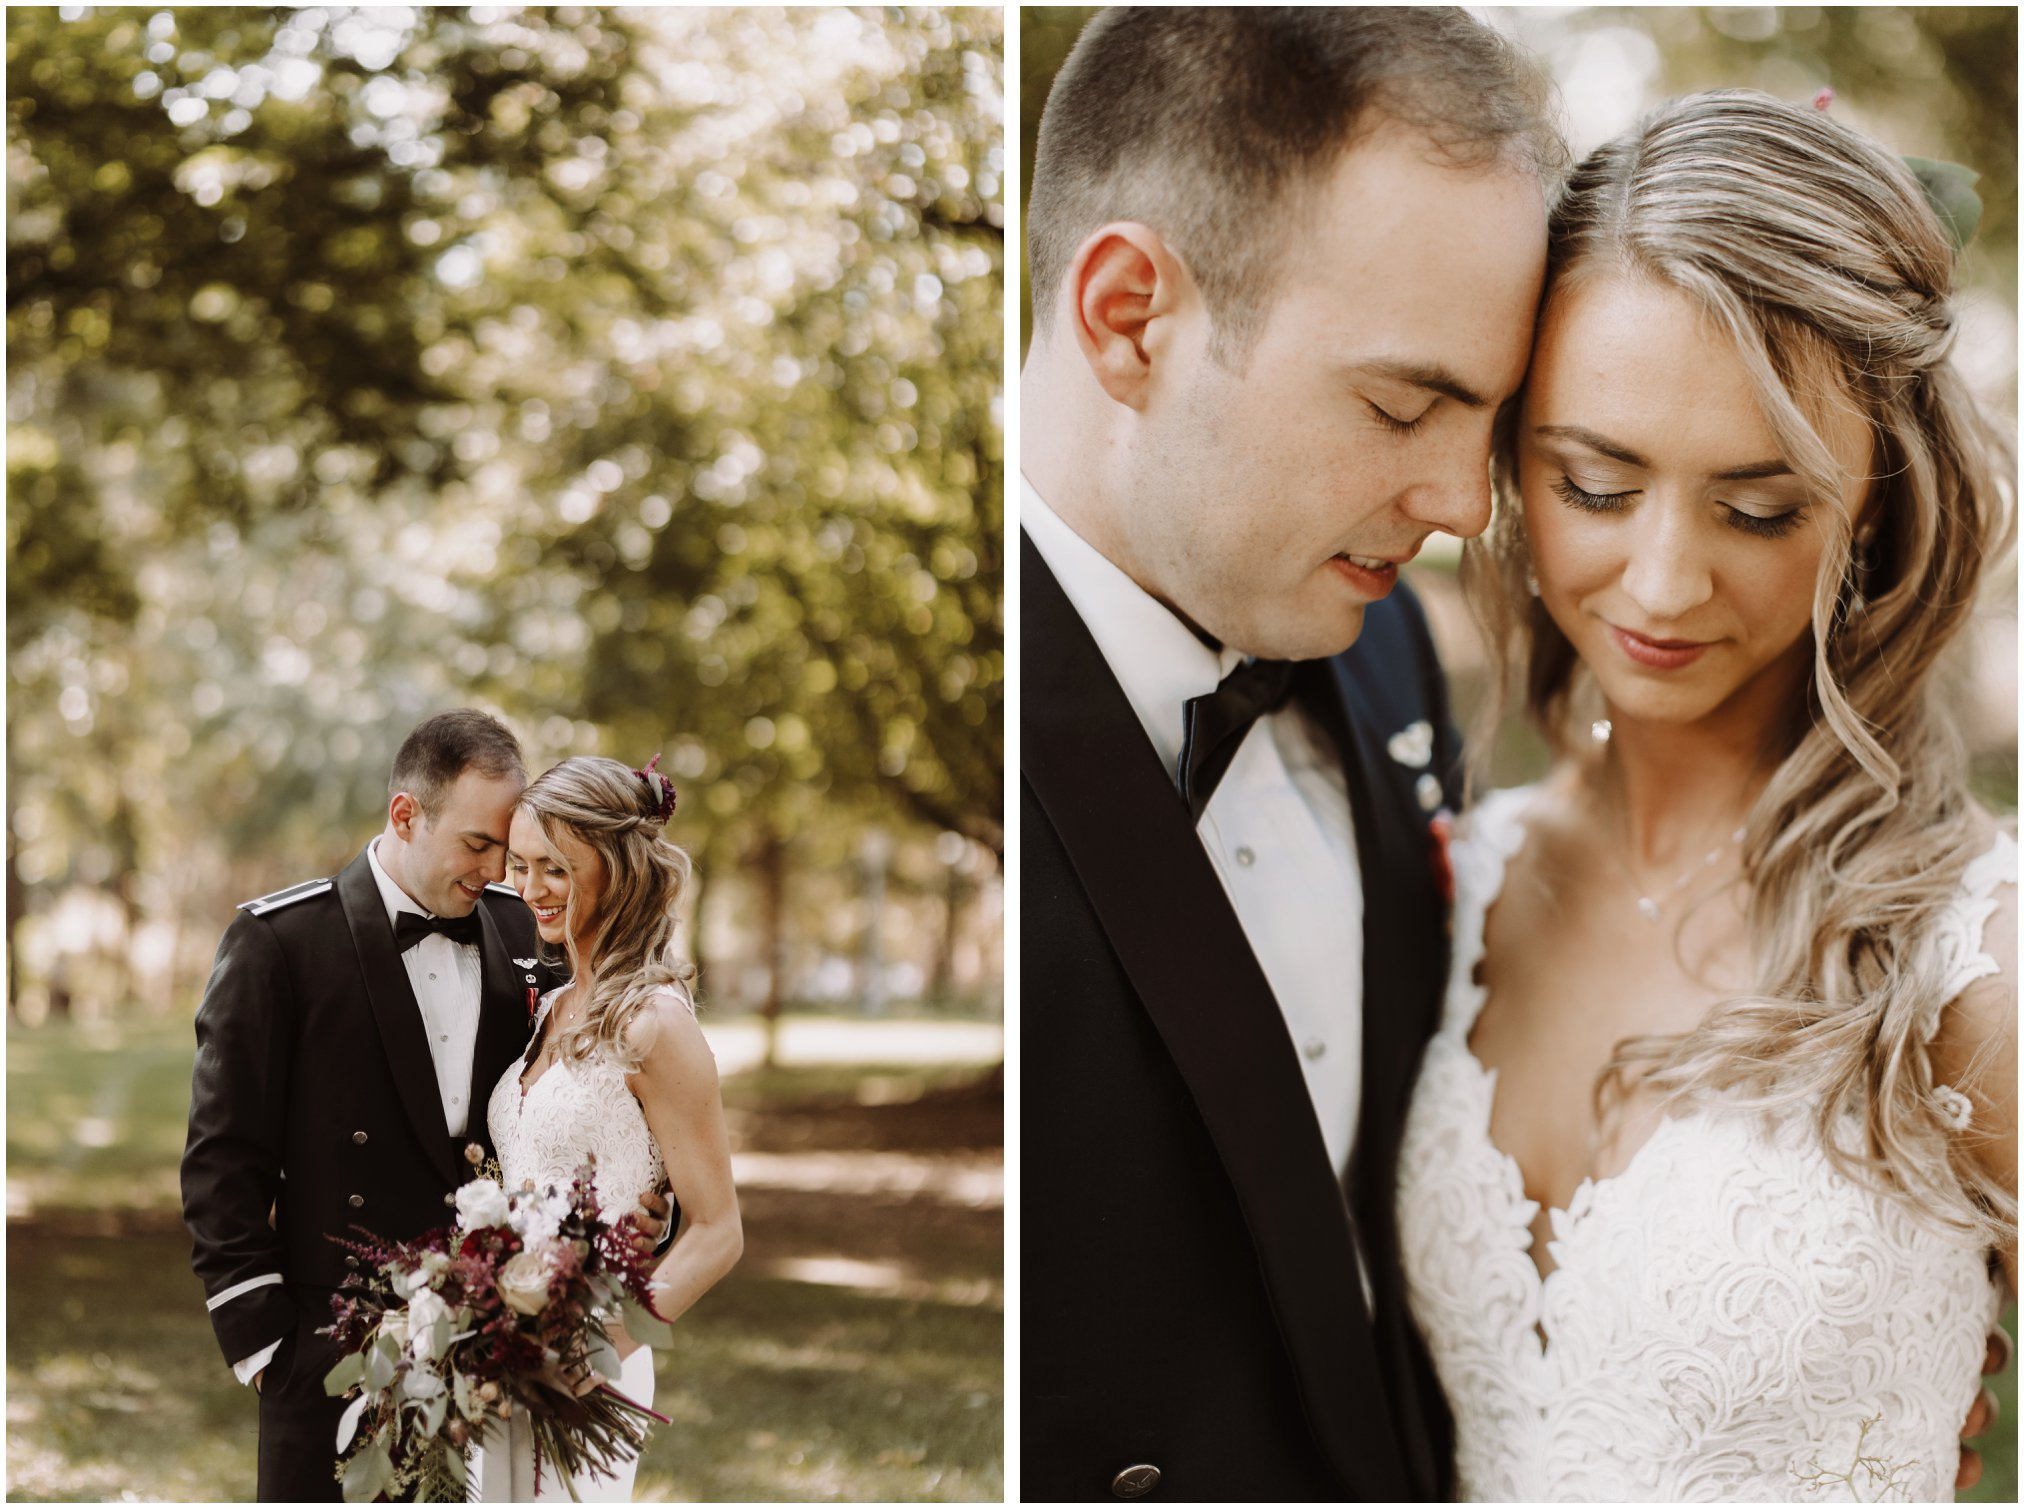 Air Force Bride and Groom Pictures